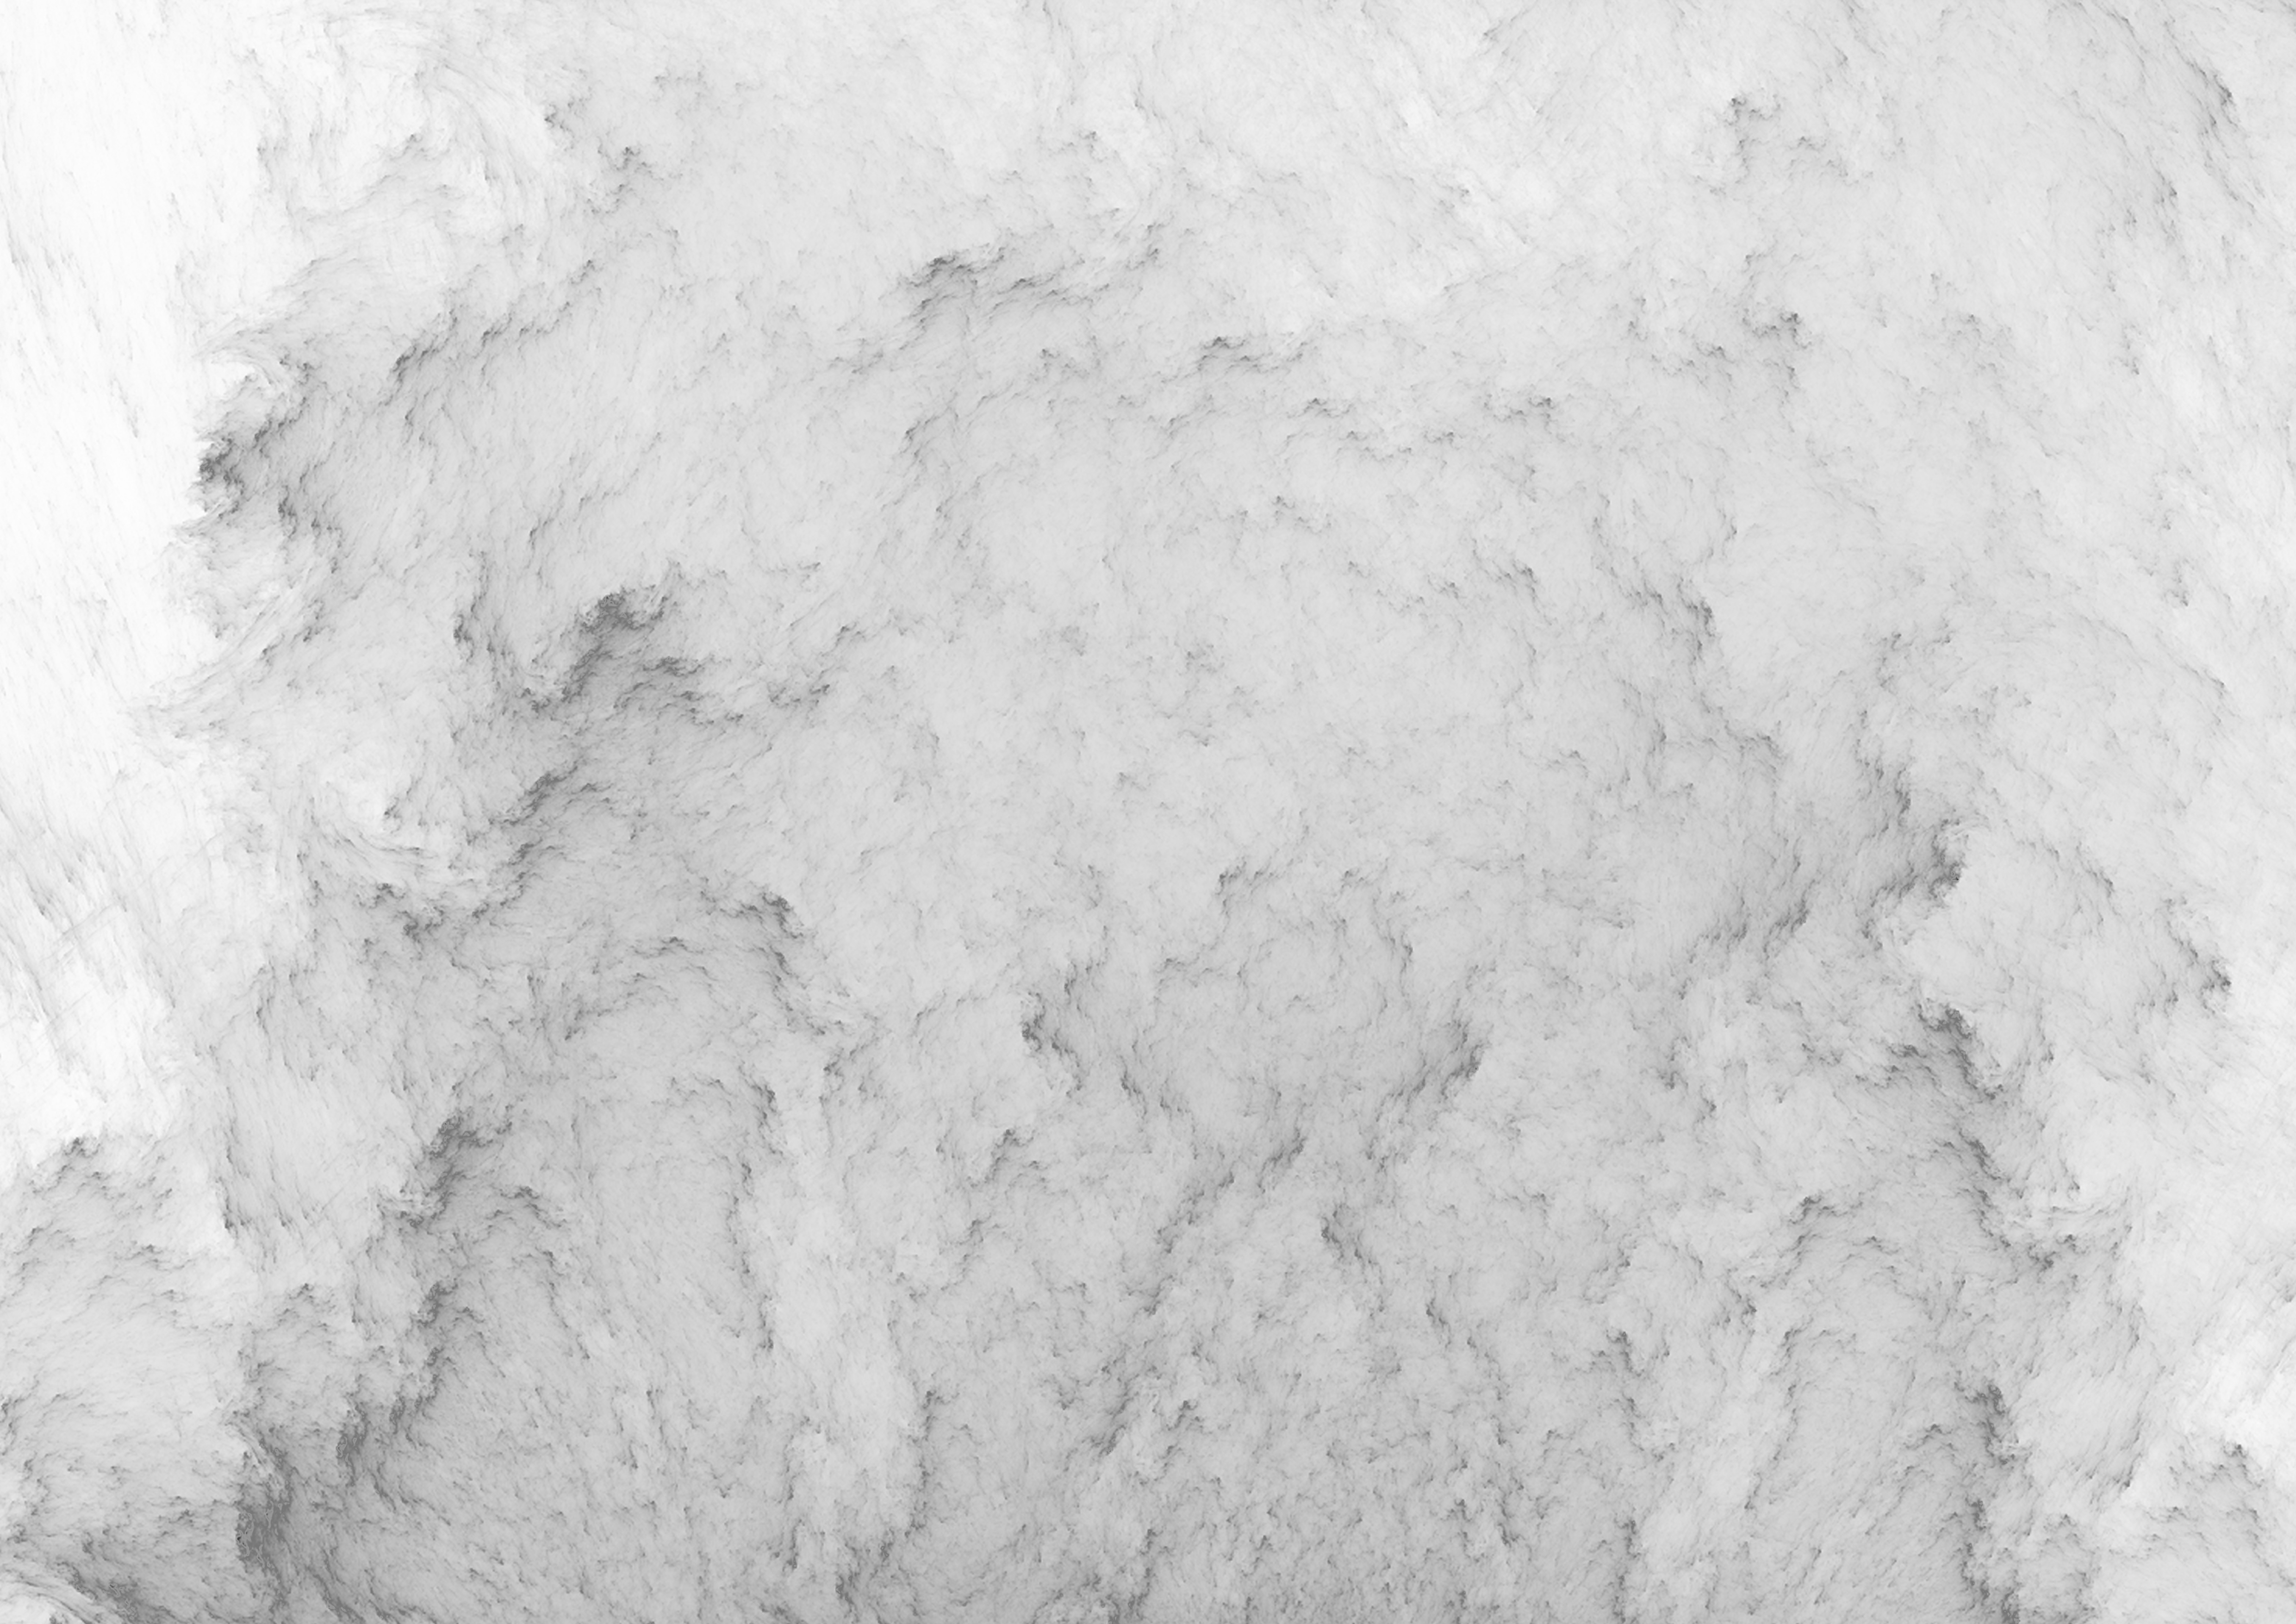 Free photo: White Organic Texture - Abstract, Closeup, Macro - Free Download - Jooinn